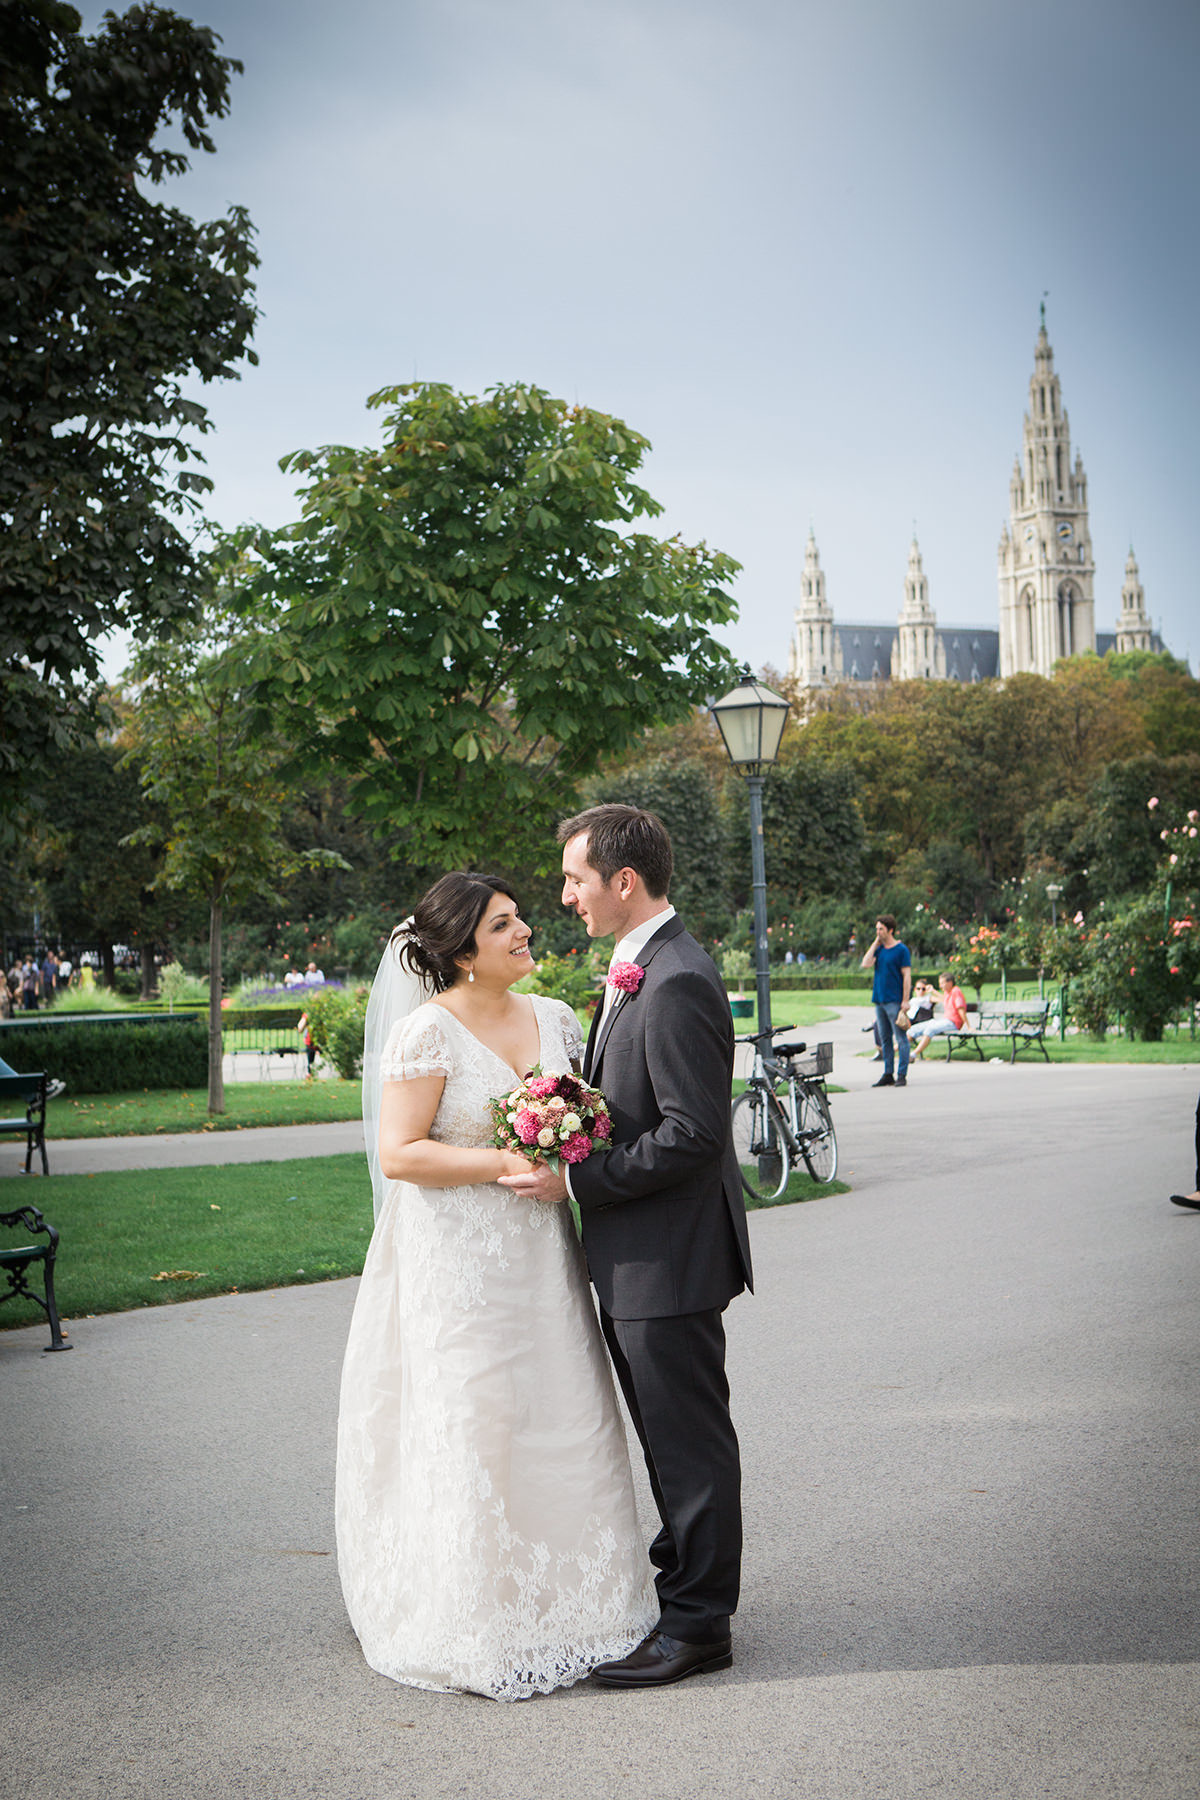 wedding-photography-vienna-woluh-guillaume-86